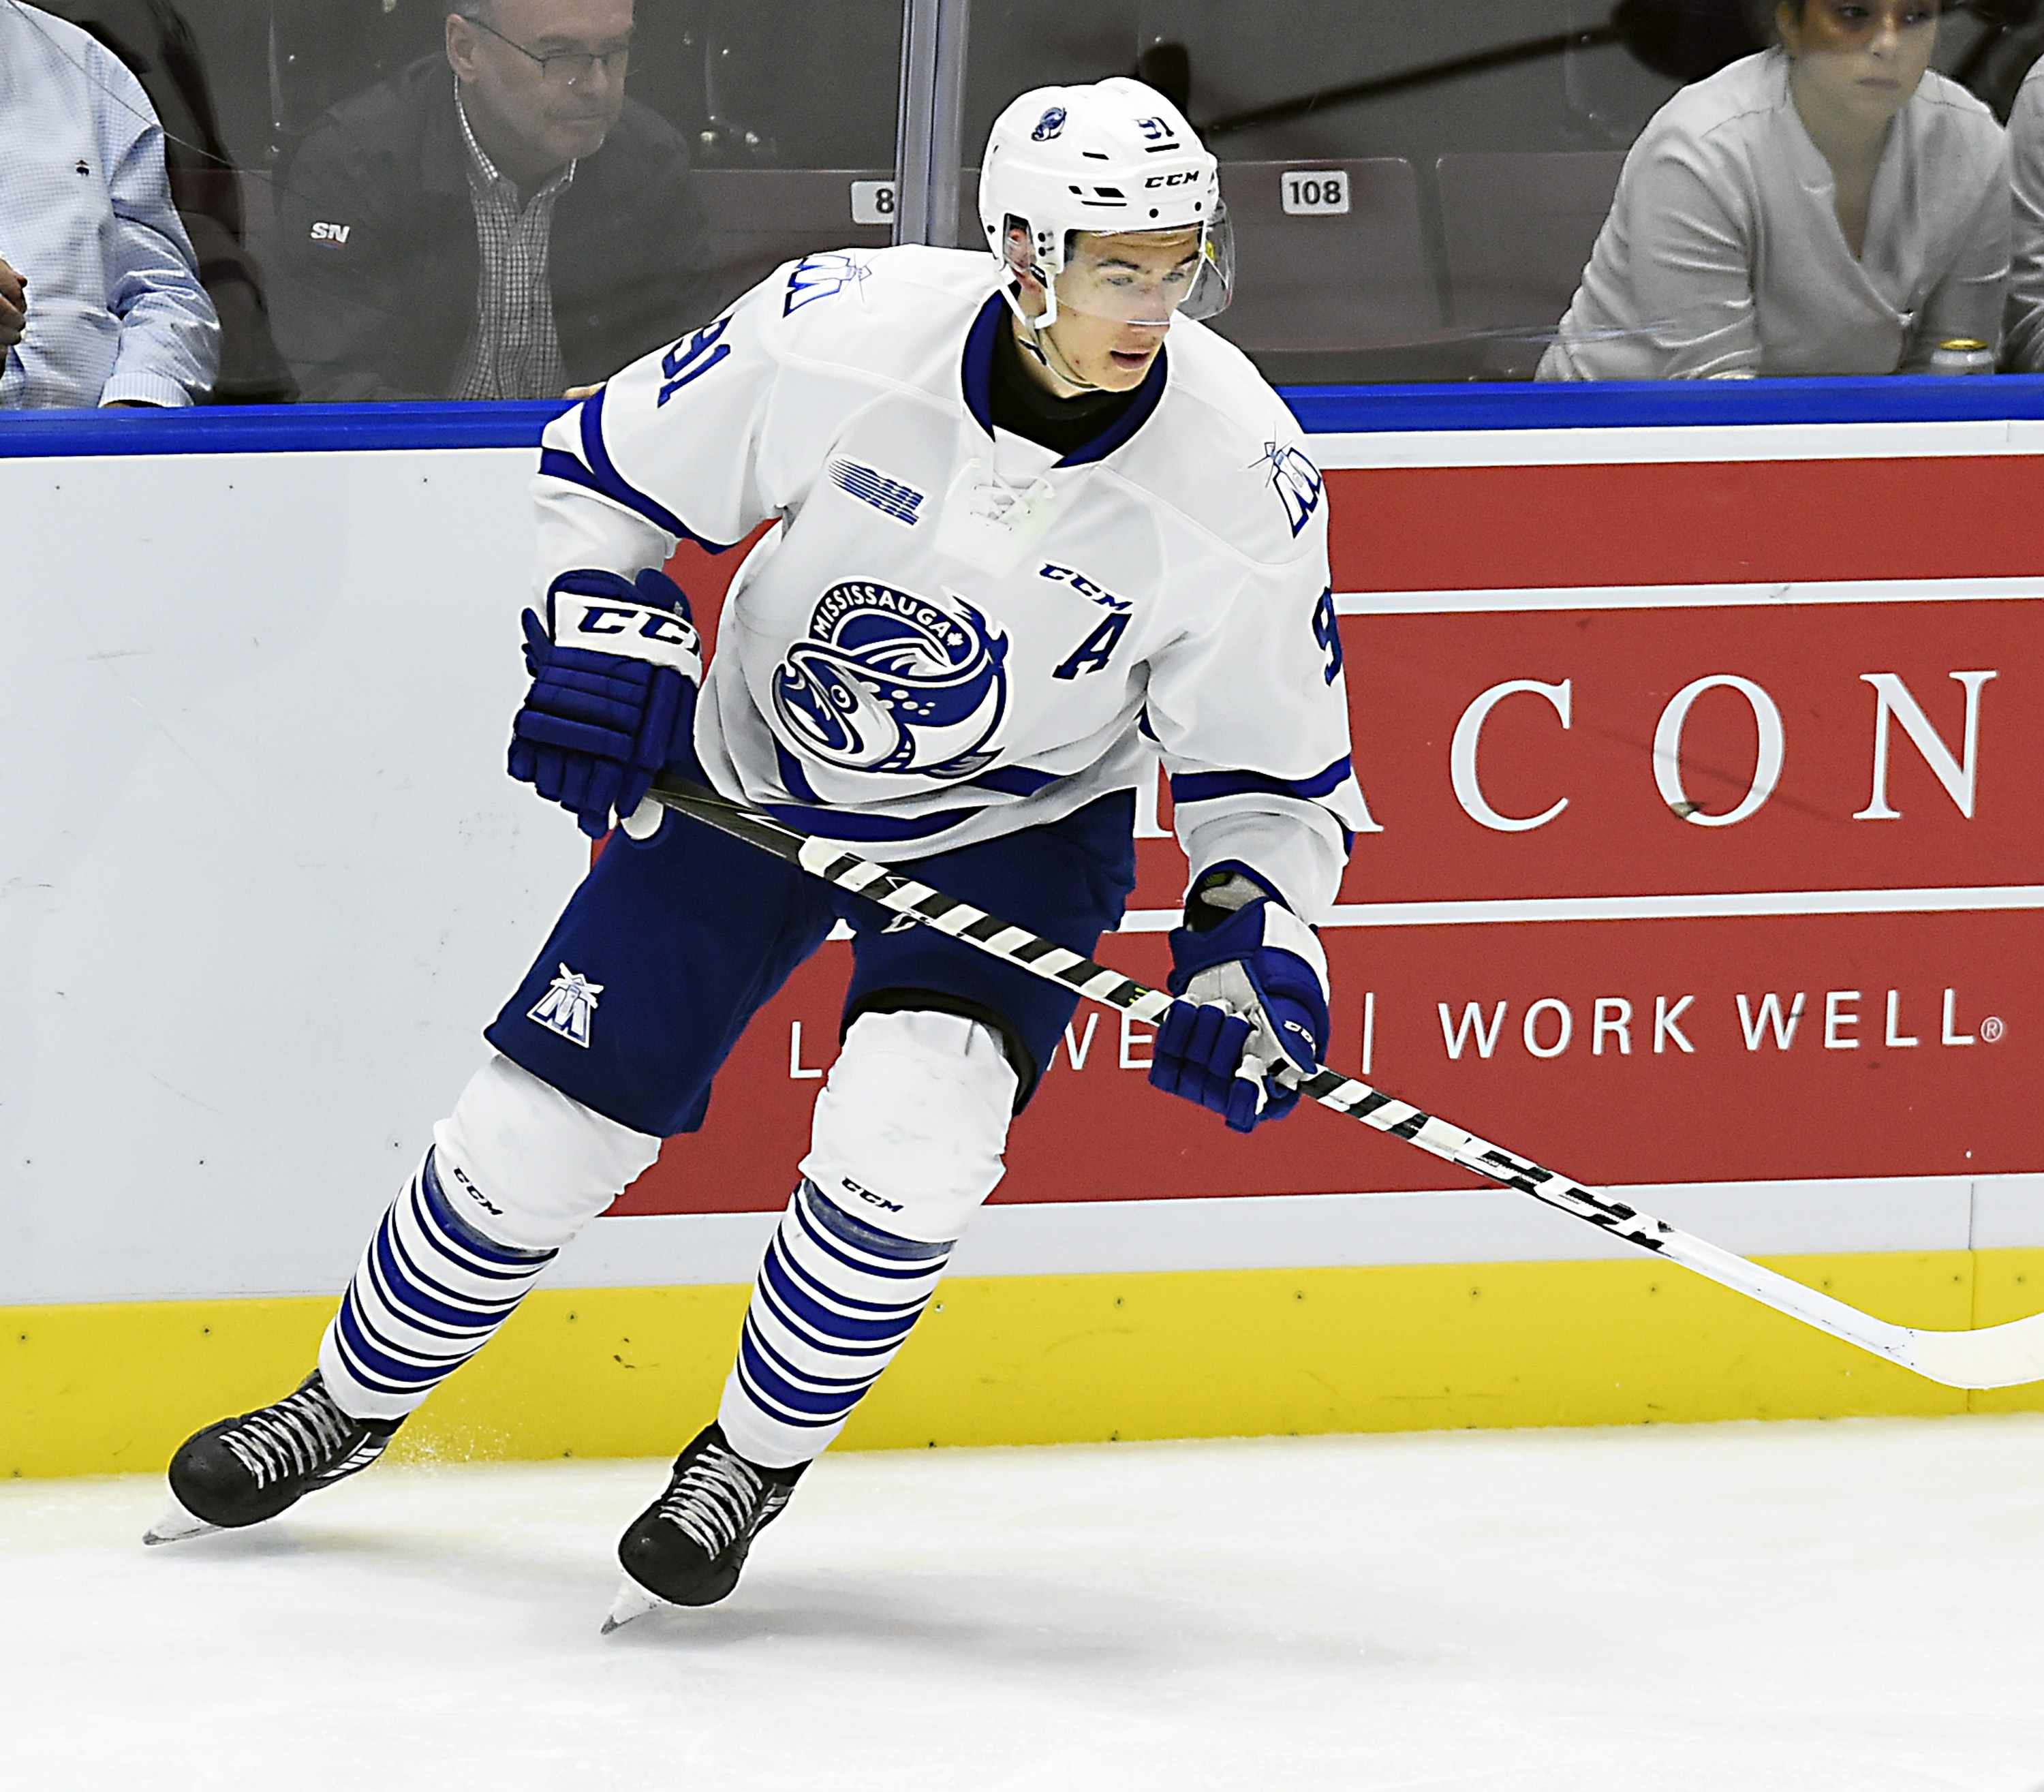 MISSISSAUGA, ON - OCTOBER 6: Ryan McLeod #91 of the Mississauga Steelheads turns up ice against the Sudbury Wolves during game action on October 6, 2017 at Hershey Centre in Mississauga, Ontario, Canada.